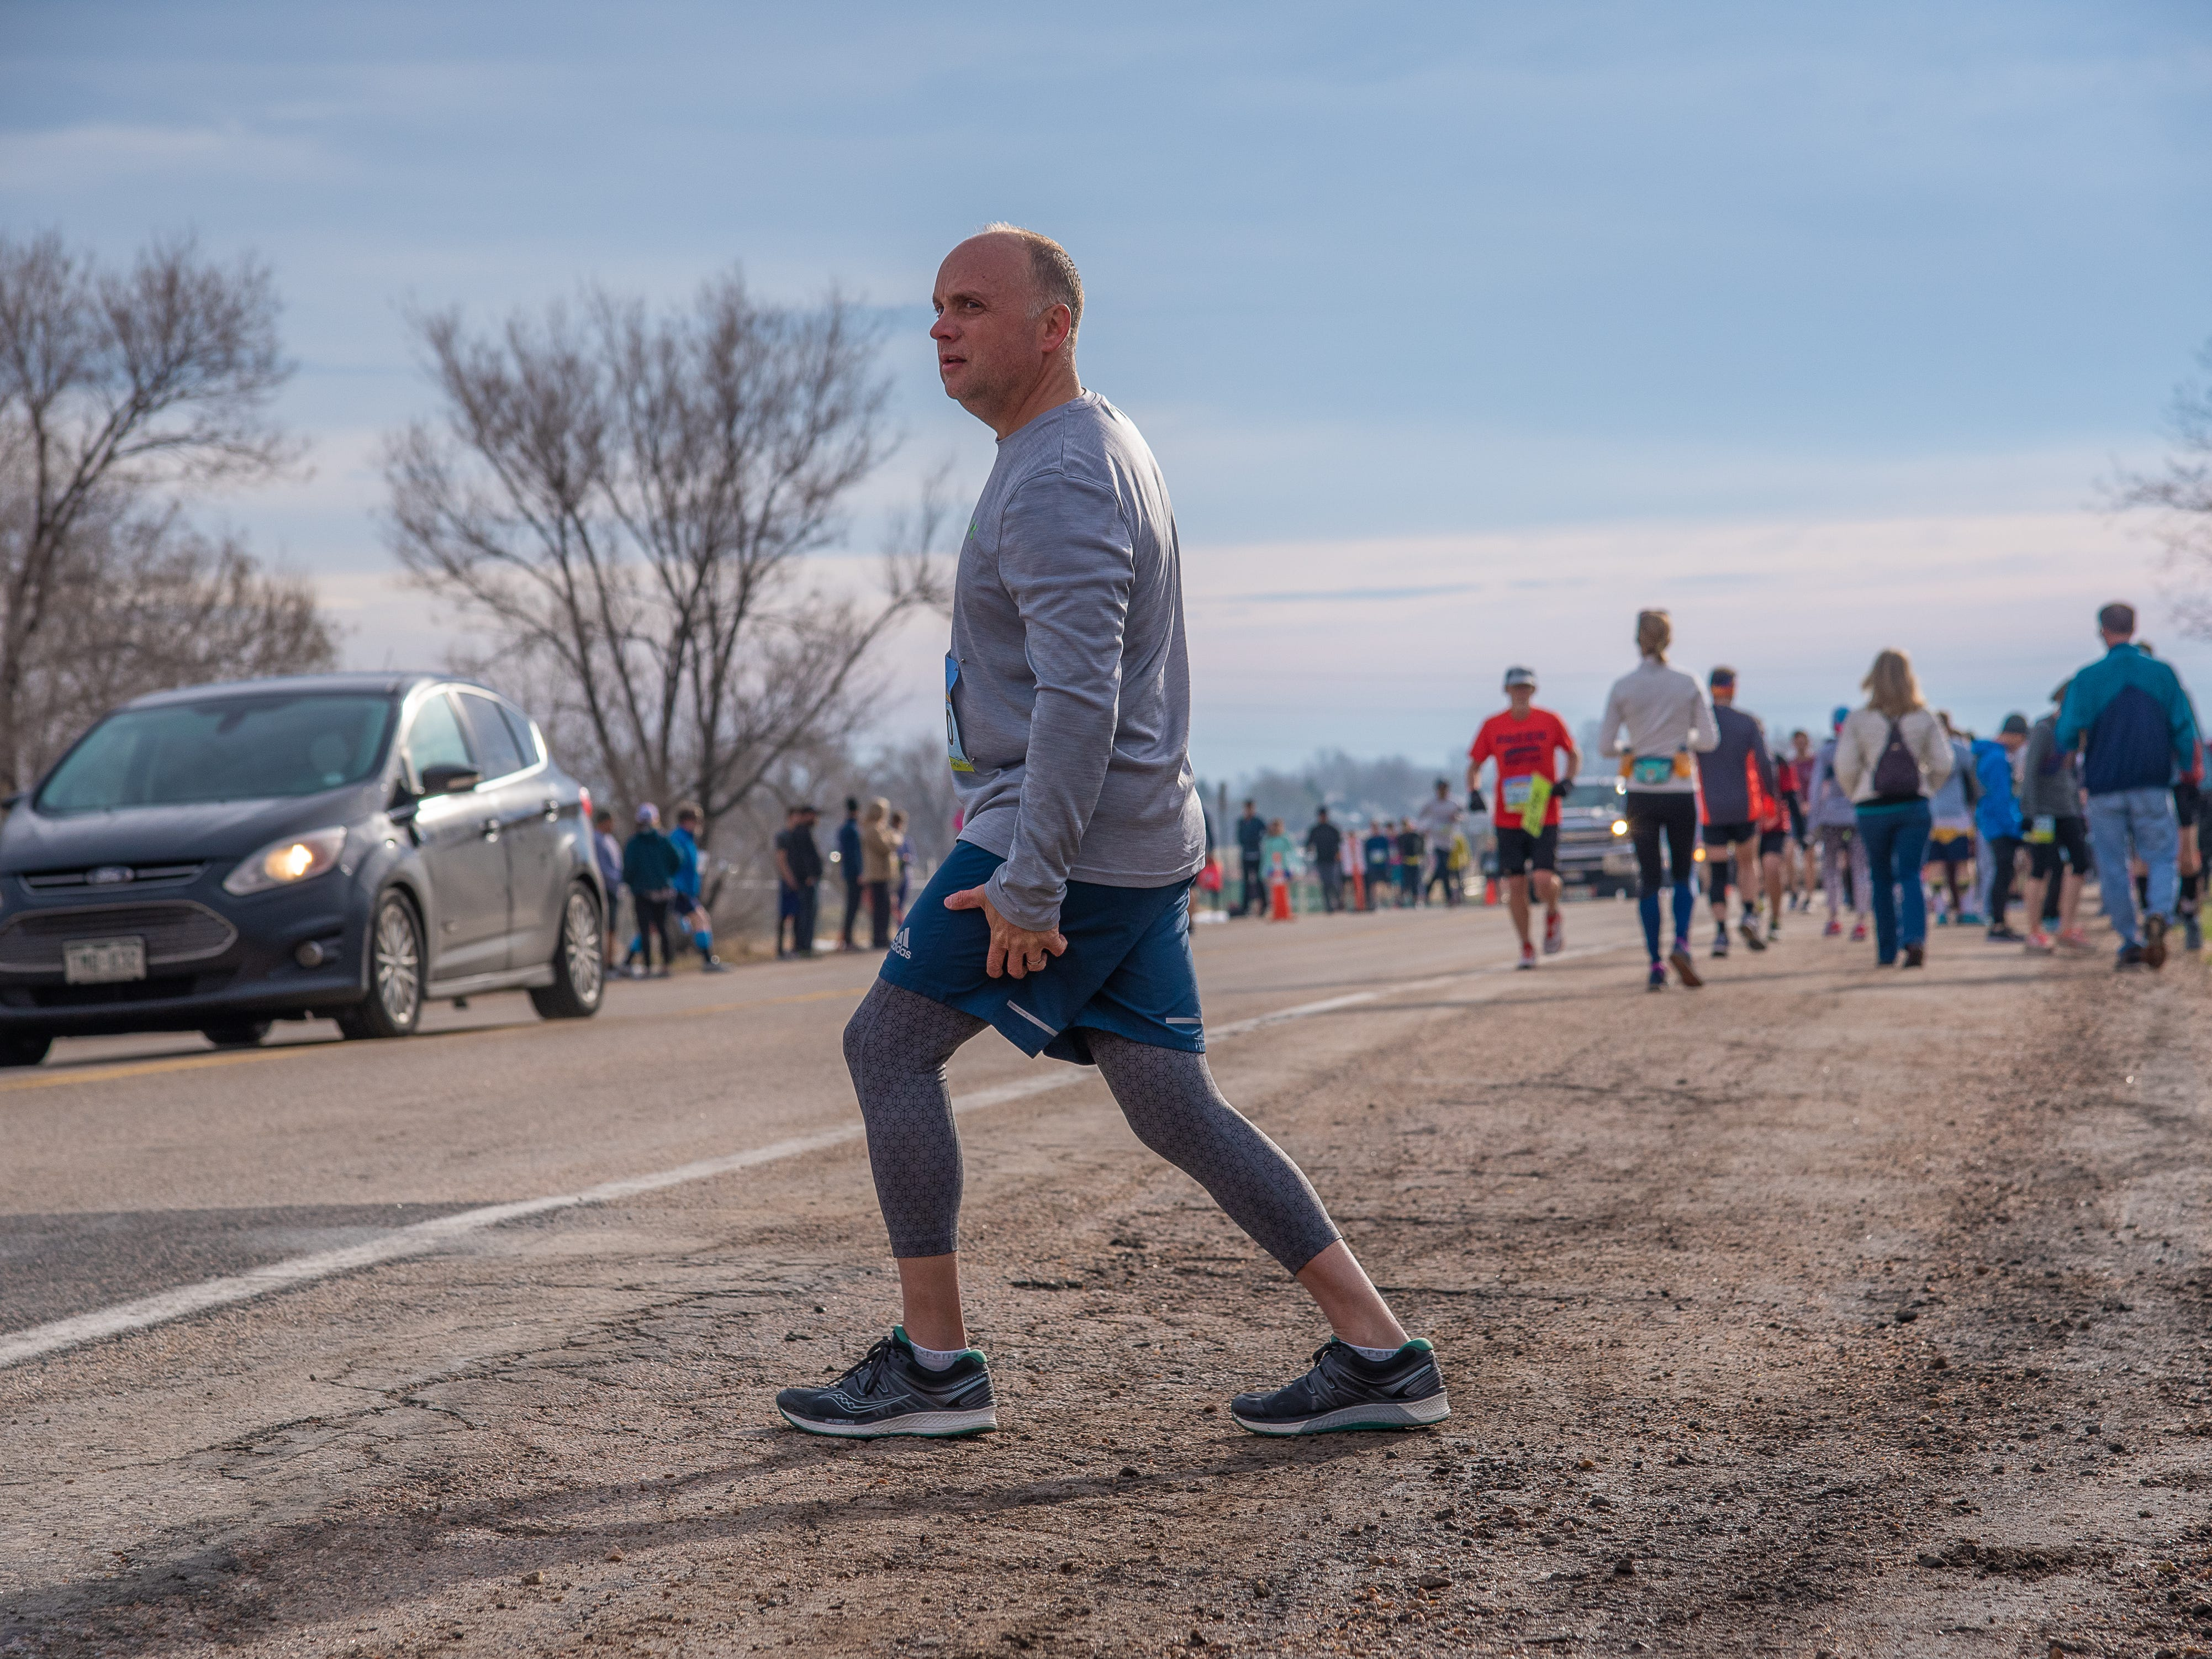 A participant limbers up before the start of the Horsetooth Half Marathon on Sunday, April 14, 2019, in Fort Collins, Colo.